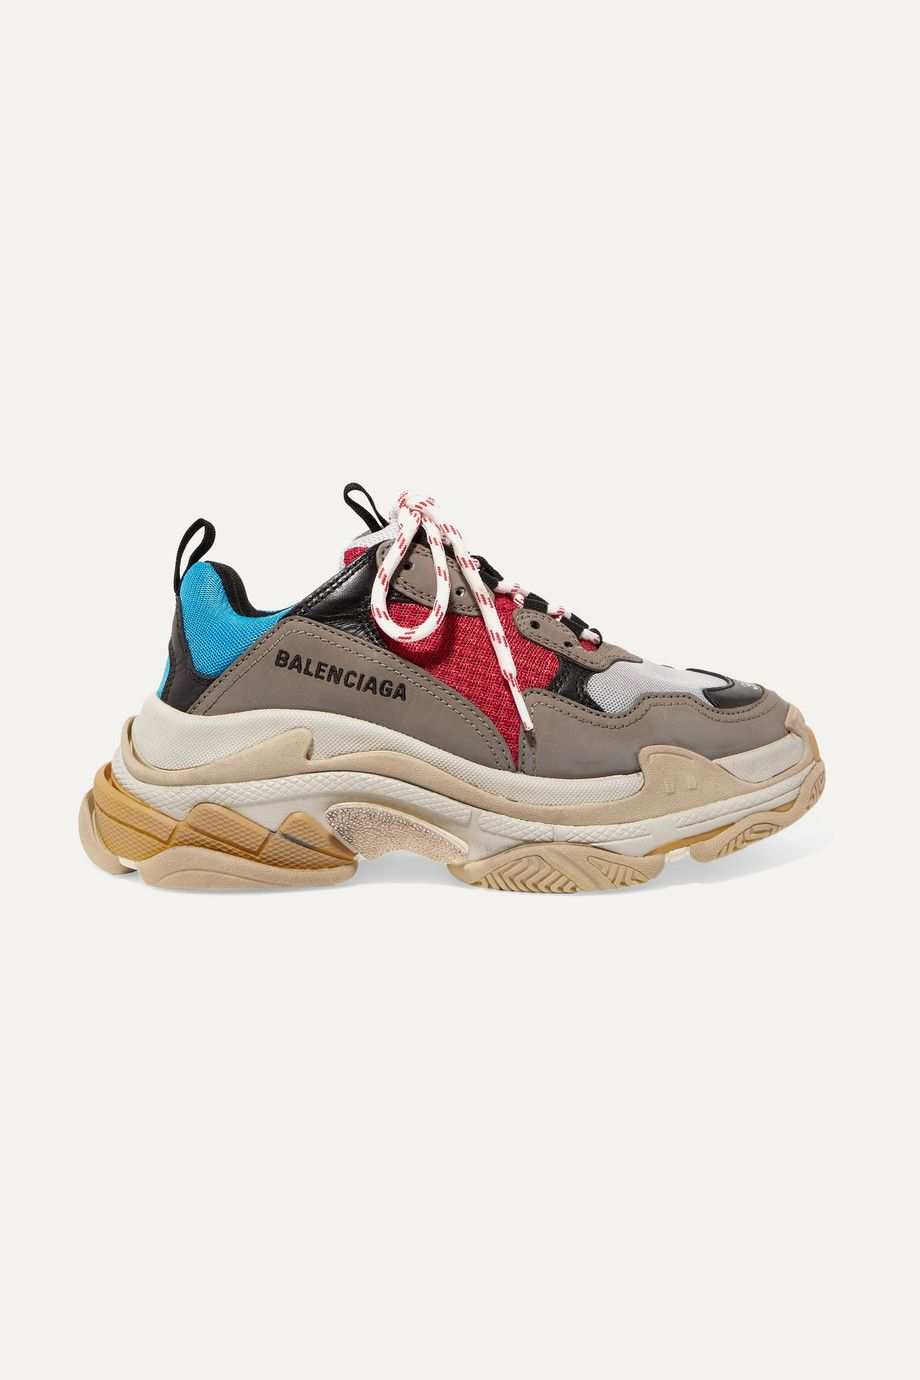 balenciaga-triple-s-blue-red-leather-nubuck-and-mesh-sneakers